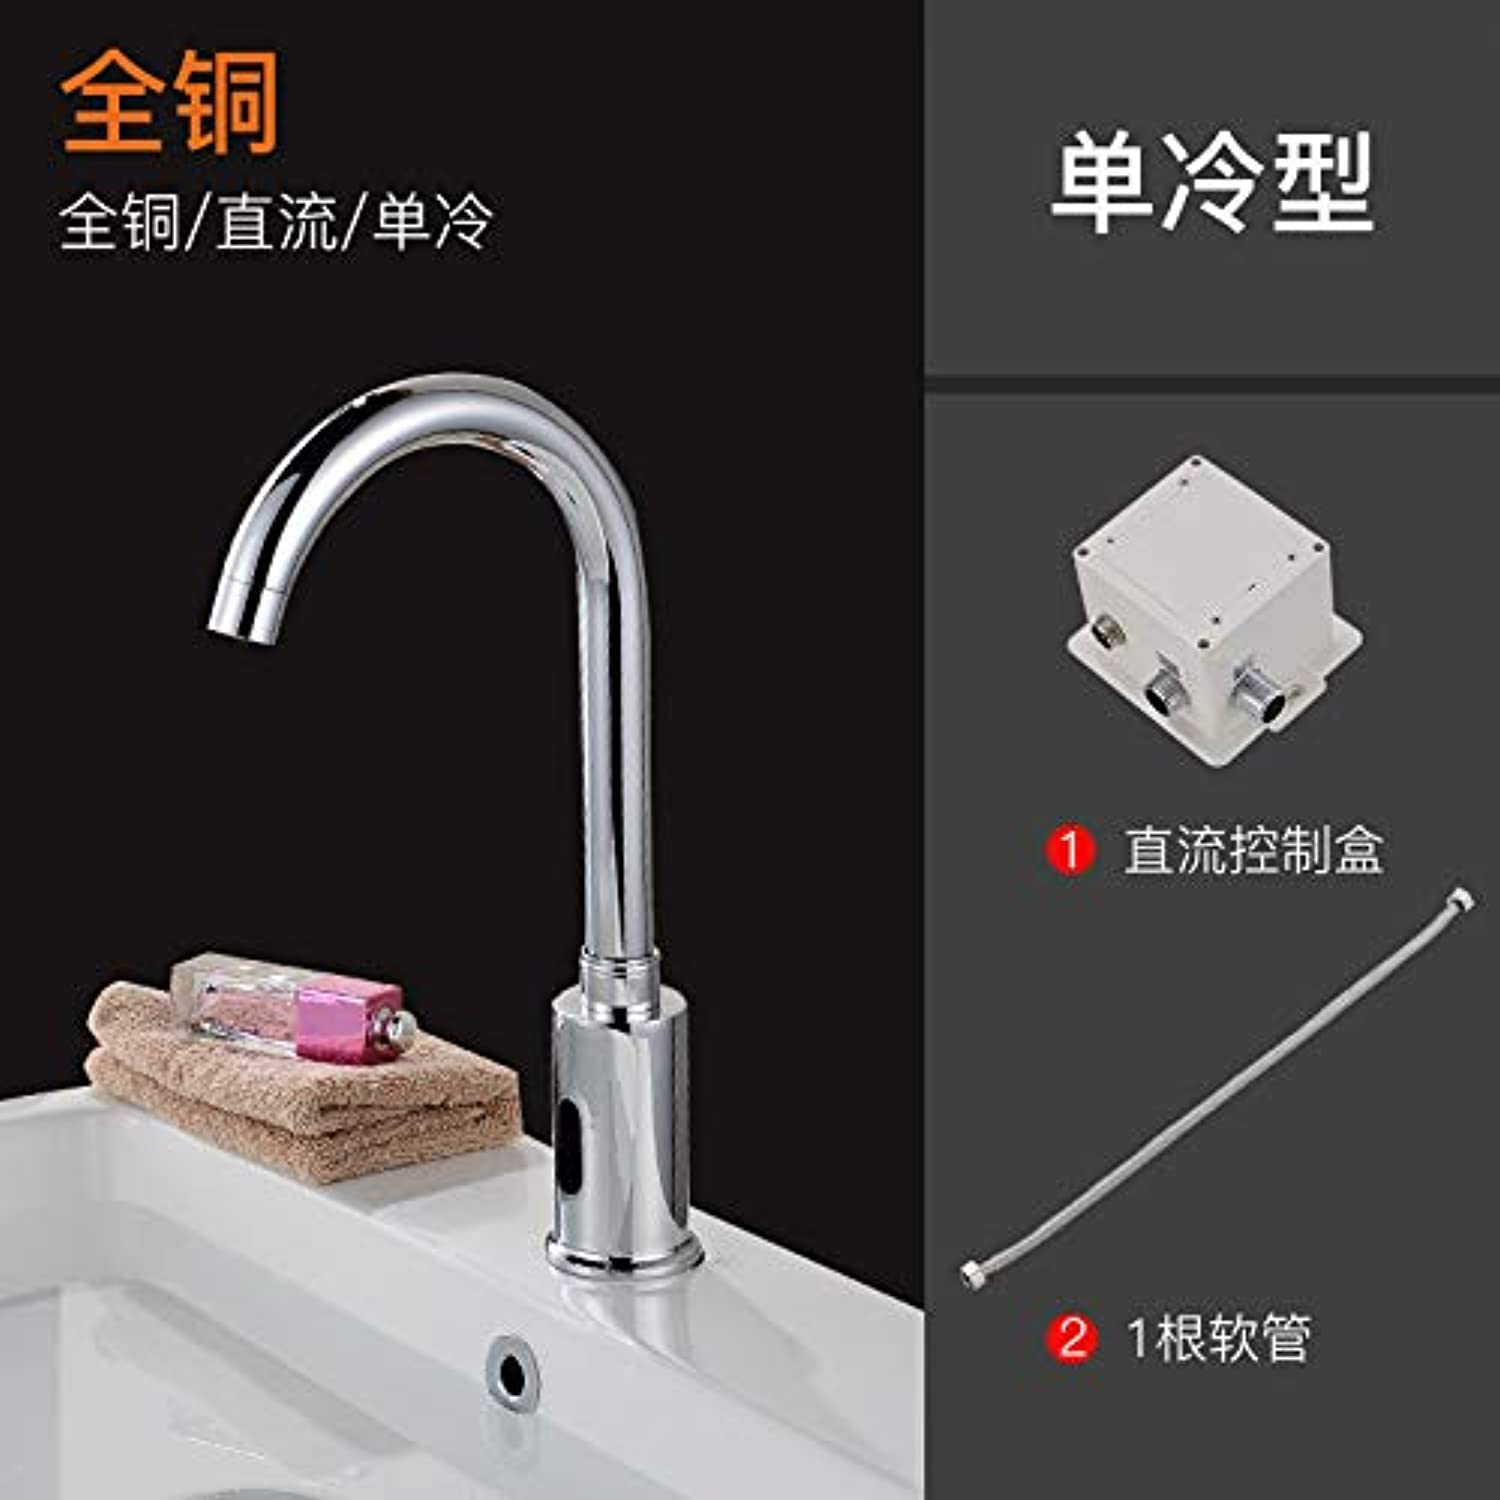 JWLT faucets Infrared Intelligent Induction Faucet Single hot and Cold Hand Washing Device washbasin Faucet Copper redary Washing Valve,B Single Cooling Three Piece (Full Copper) DC